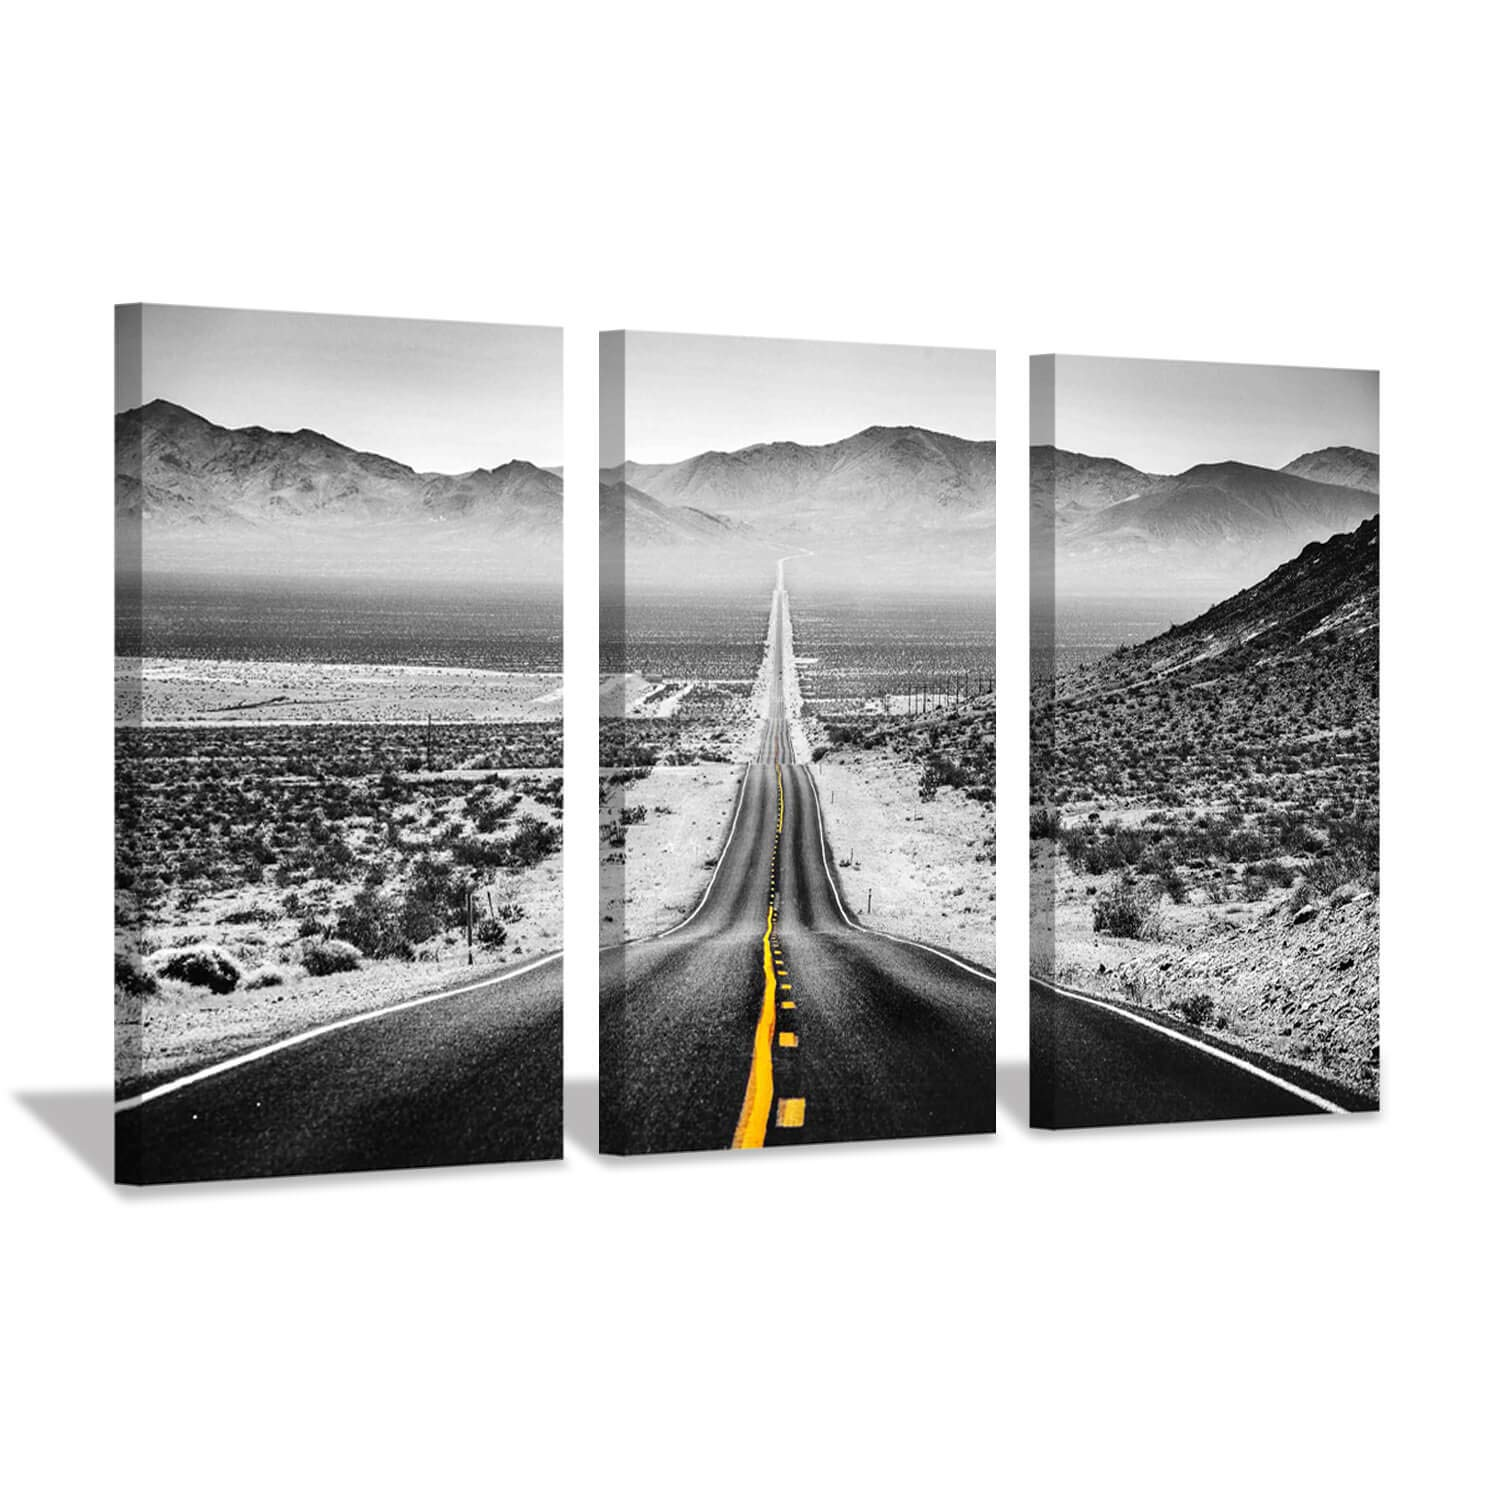 Hardy Gallery Road Canvas Picture Wall Art: Winter Mountain Painting Landscape Artwork Print on Canvas for Living Room (26'' x 16'' x 3 Panels)